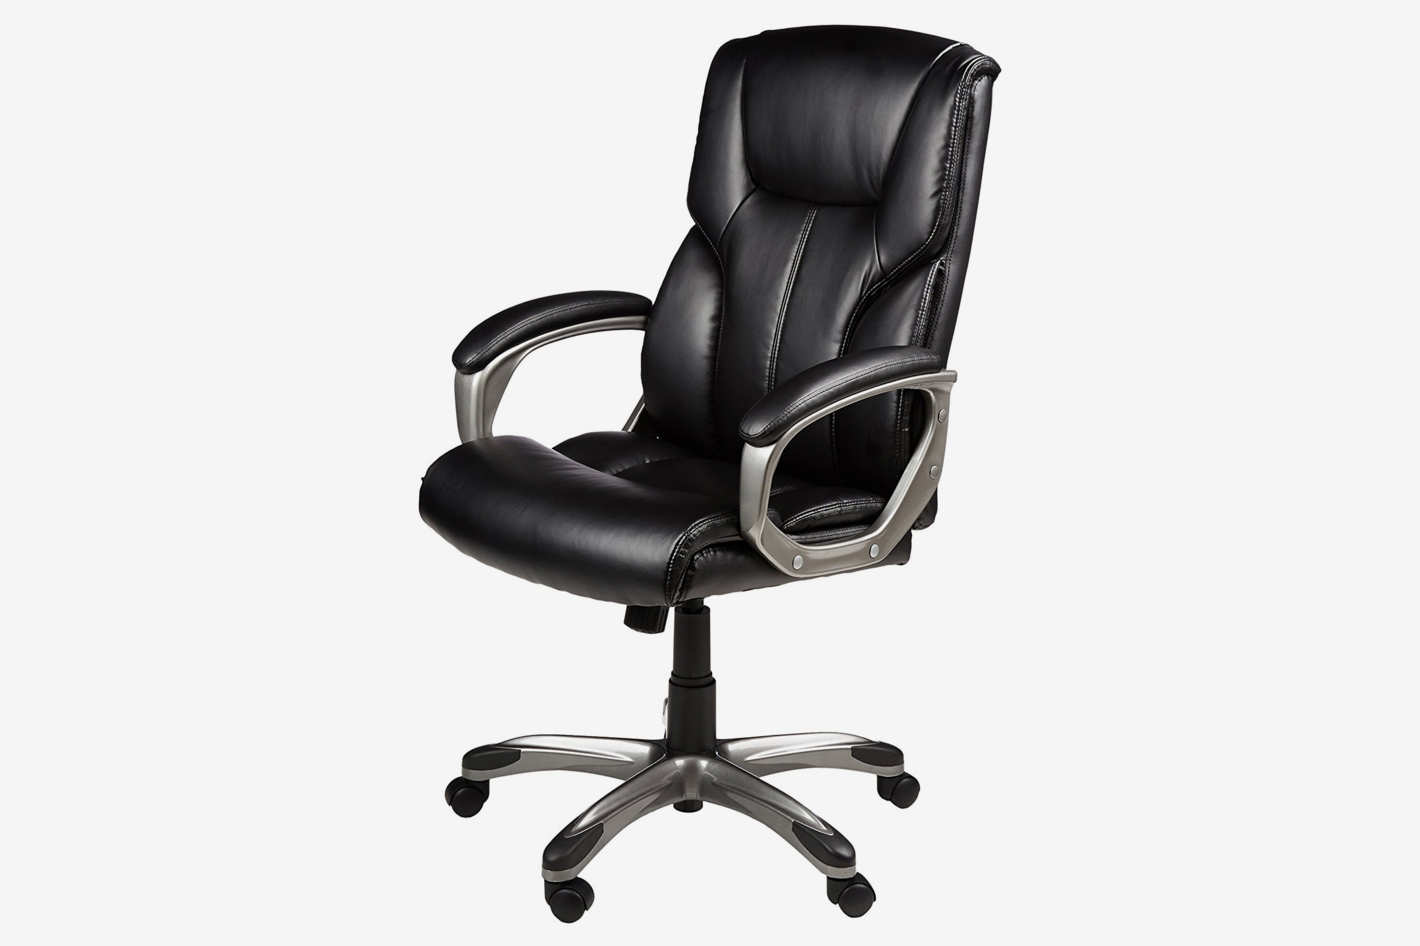 unique leather office chairs shaggy bean bag chair 15 best and home 2019 amazonbasics executive black